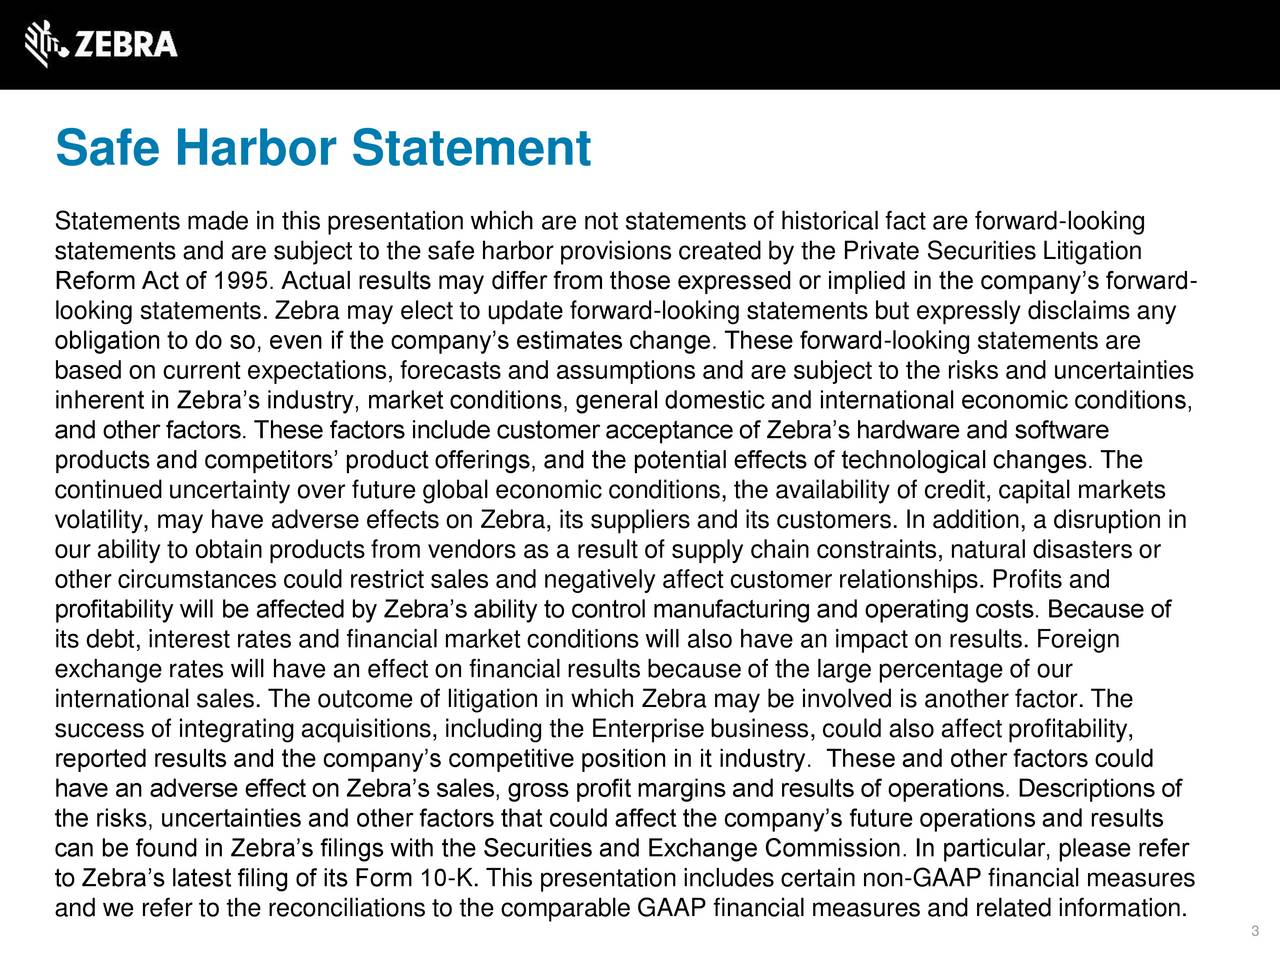 Statements made in this presentation which are not statements of historical fact are forward-looking statements and are subject to the safe harbor provisions created by the Private Securities Litigation Reform Act of 1995. Actual results may differ from those expressed or implied in the companys forward- looking statements. Zebra may elect to update forward-looking statements but expressly disclaims any obligation to do so, even if the companys estimates change. These forward-looking statements are based on current expectations, forecasts and assumptions and are subject to the risks and uncertainties inherent in Zebras industry, market conditions, general domestic and international economic conditions, and other factors. These factors include customer acceptance of Zebras hardware and software products and competitors product offerings, and the potential effects of technological changes. The continued uncertainty over future global economic conditions, the availability of credit, capital markets volatility, may have adverse effects on Zebra, its suppliers and its customers. In addition, a disruption in our ability to obtain products from vendors as a result of supply chain constraints, natural disasters or other circumstances could restrict sales and negatively affect customer relationships. Profits and profitability will be affected by Zebras ability to control manufacturing and operating costs. Because of its debt, interest rates and financial market conditions will also have an impact on results. Foreign exchange rates will have an effect on financial results because of the large percentage of our international sales. The outcome of litigation in which Zebra may be involved is another factor. The success of integrating acquisitions, including the Enterprise business, could also affect profitability, reported results and the companys competitive position in it industry. These and other factors could have an adverse effect on Zebras sales, gross profit margins and 